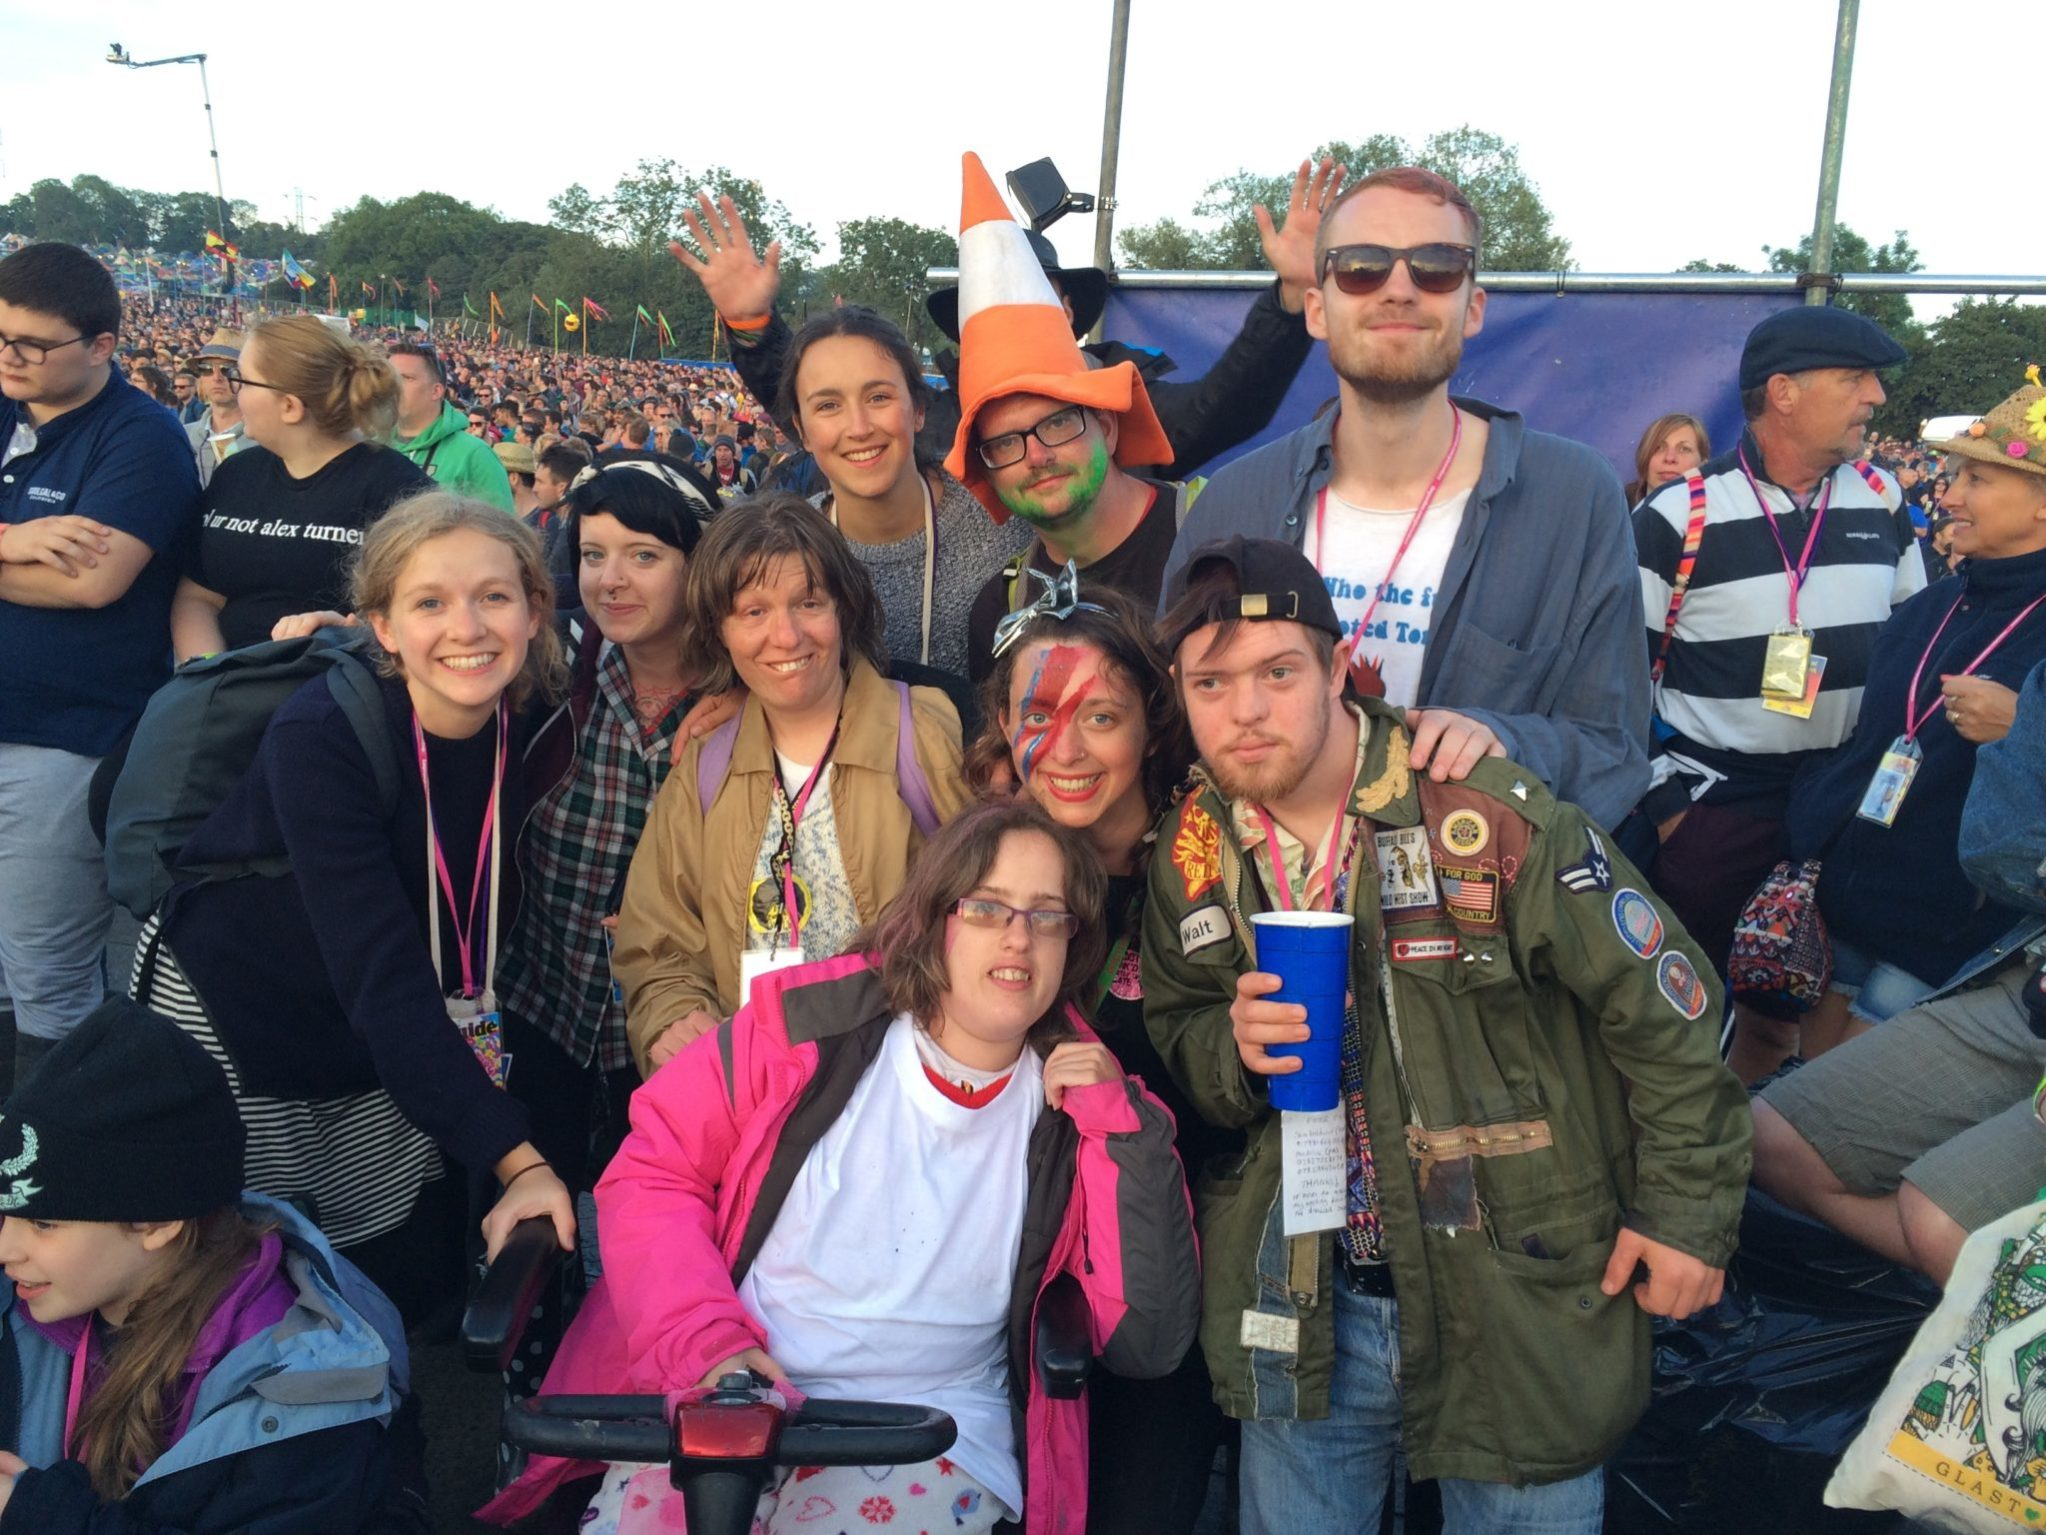 Group of friends at Glastonbury festival